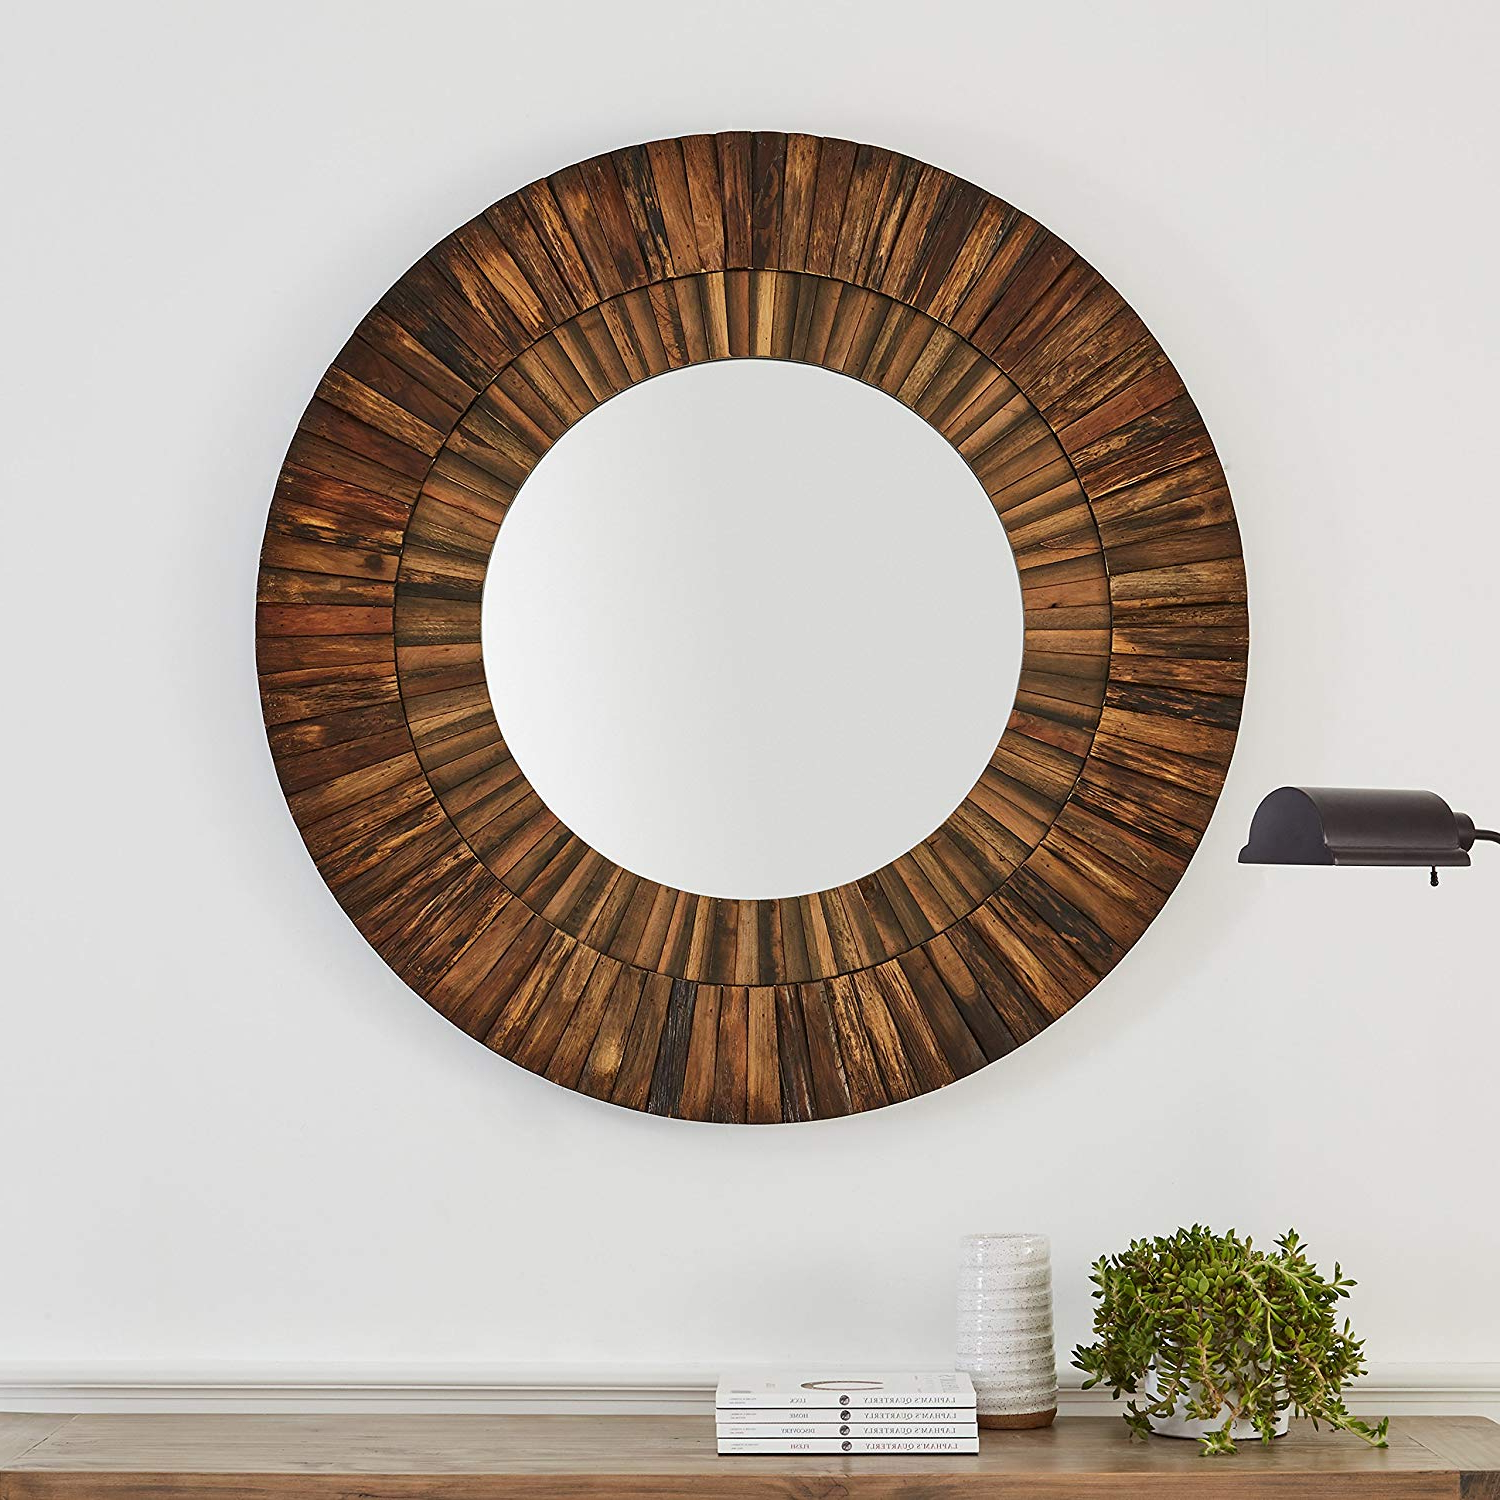 Famous Stone & Beam Round Layered Rustic Wood Hanging Wall Mirror Decor, 42 Inch  Height, Dark Wood Finish With Regard To Dark Wood Wall Mirrors (View 9 of 20)